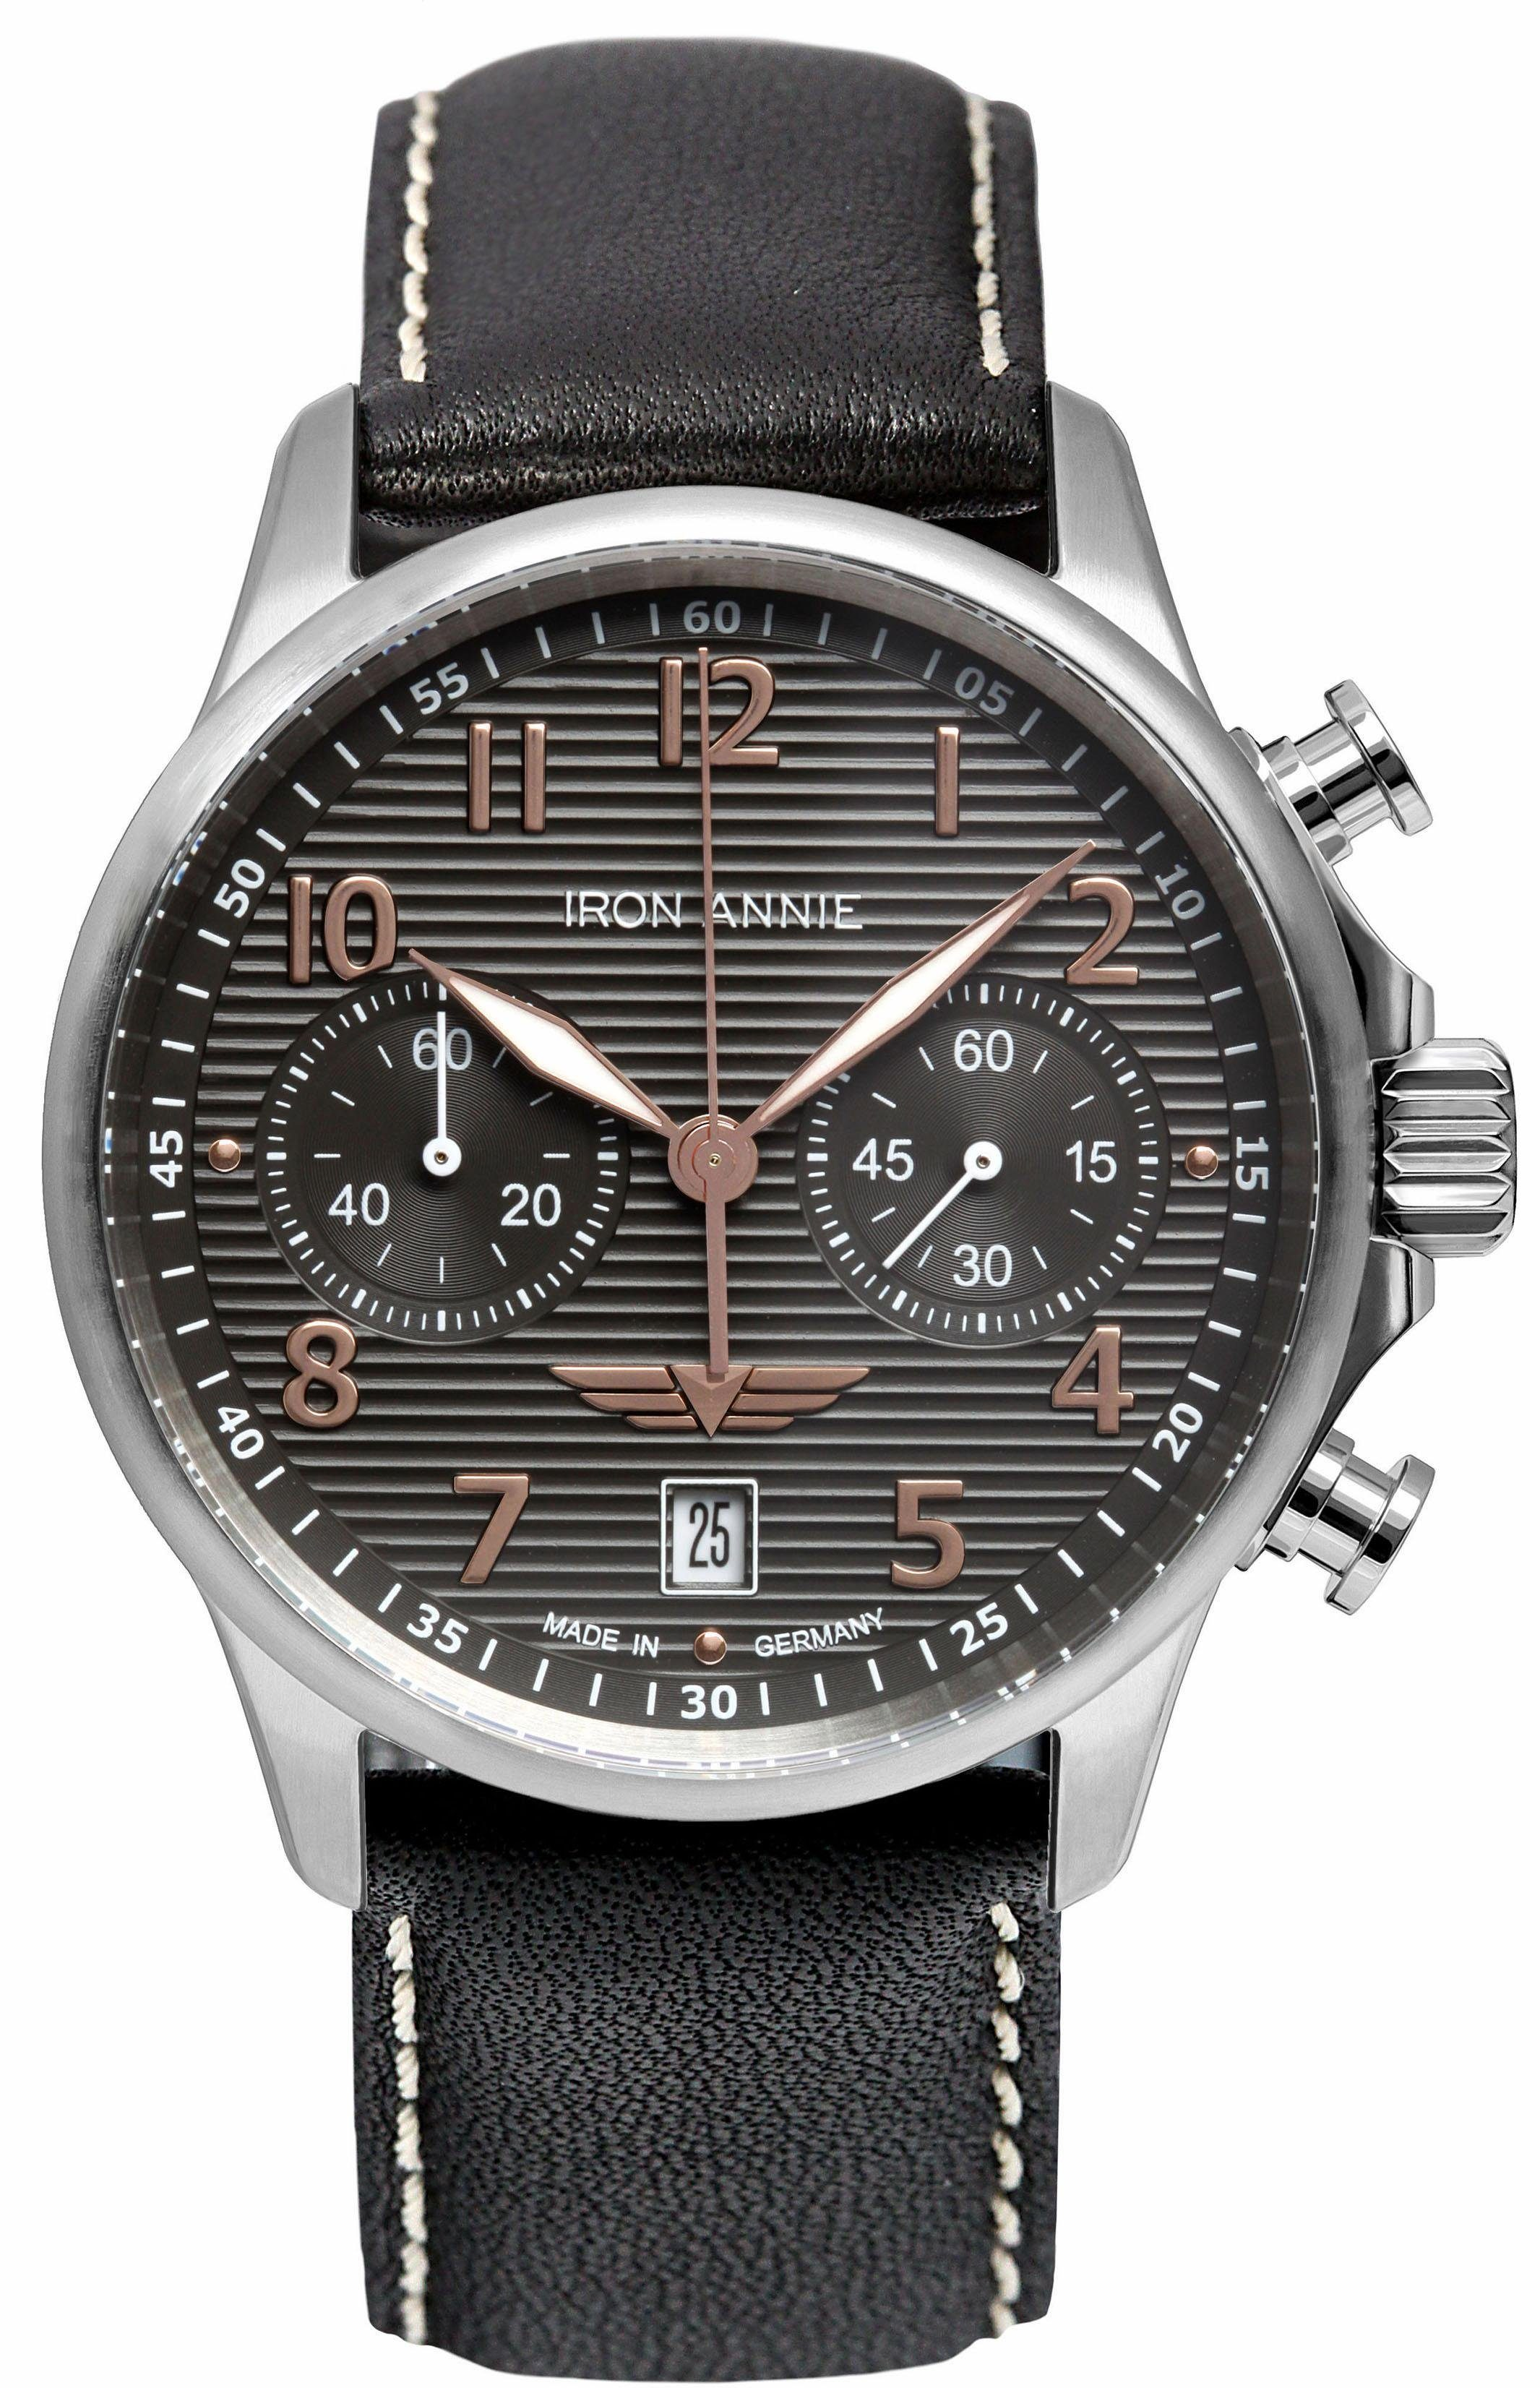 IRON ANNIE Chronograph »D-AQUI, 58765«, Made in Germany